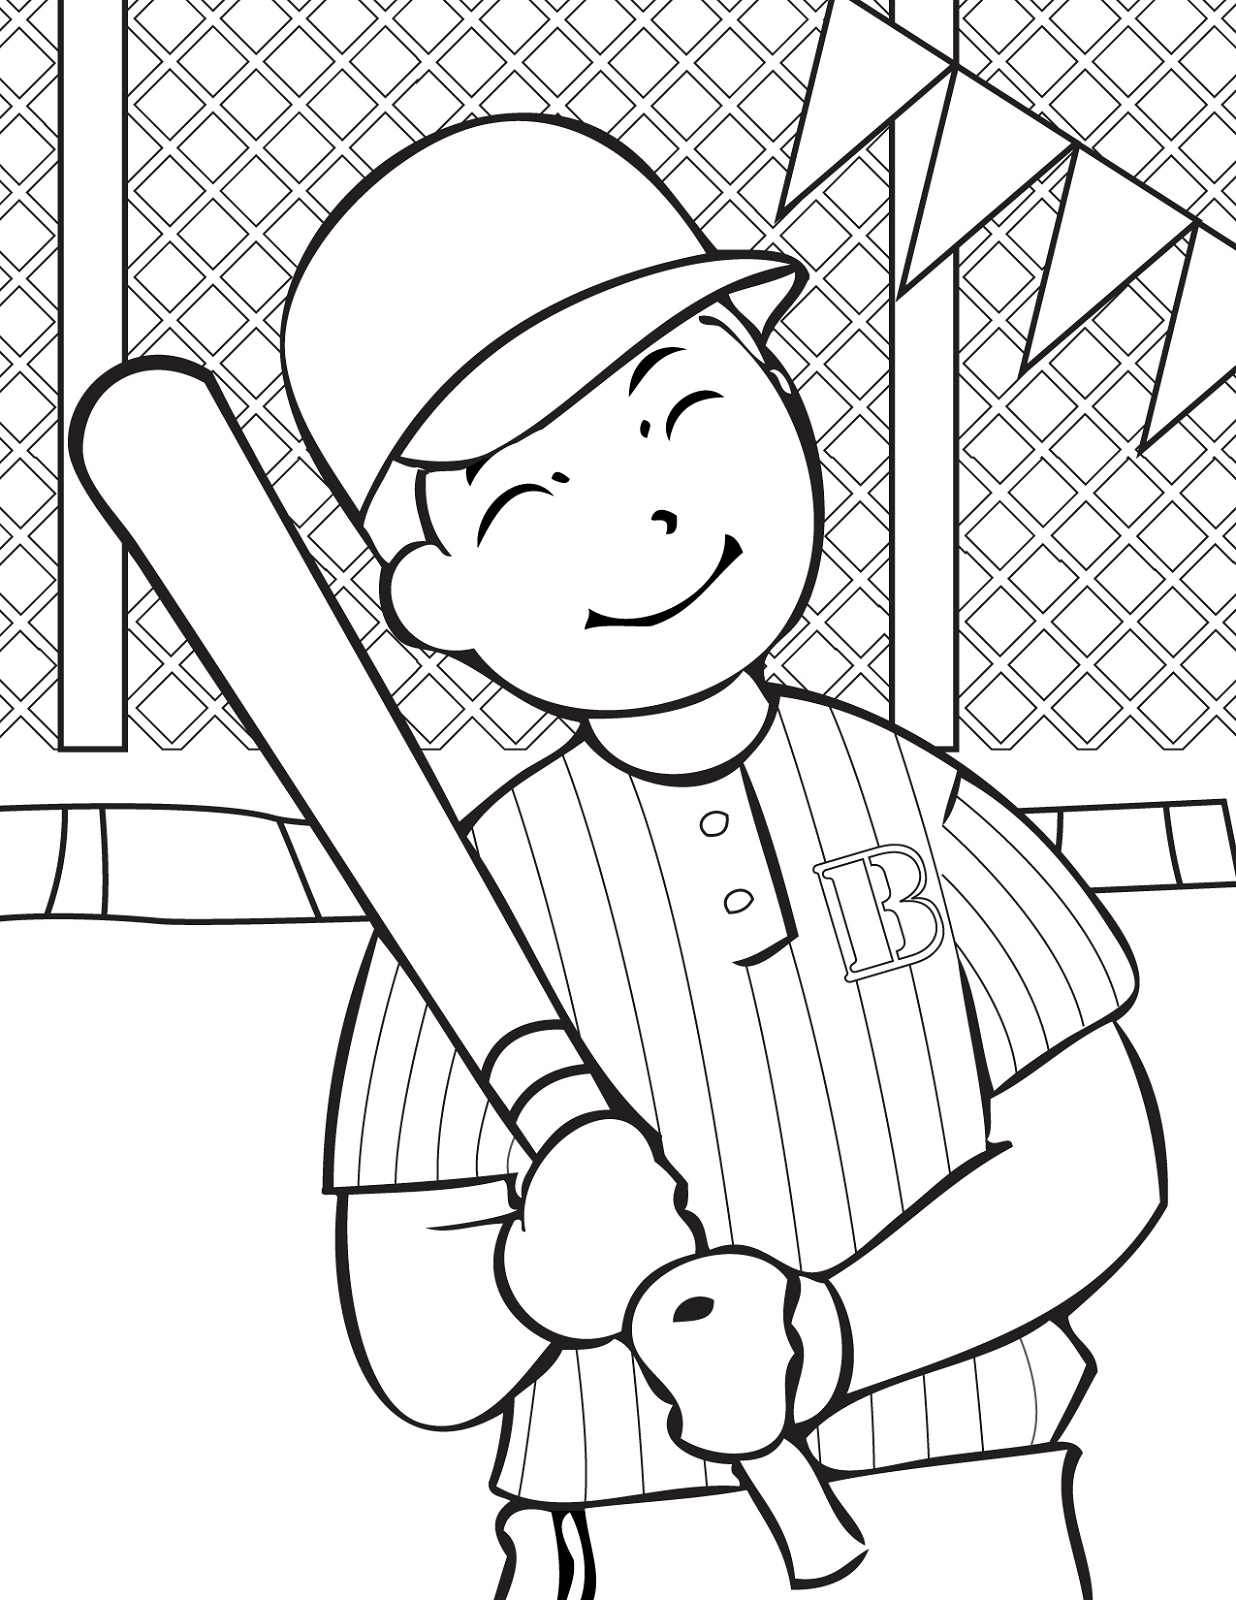 baseball coloring pages for kids - baseball color pages for children activity shelter